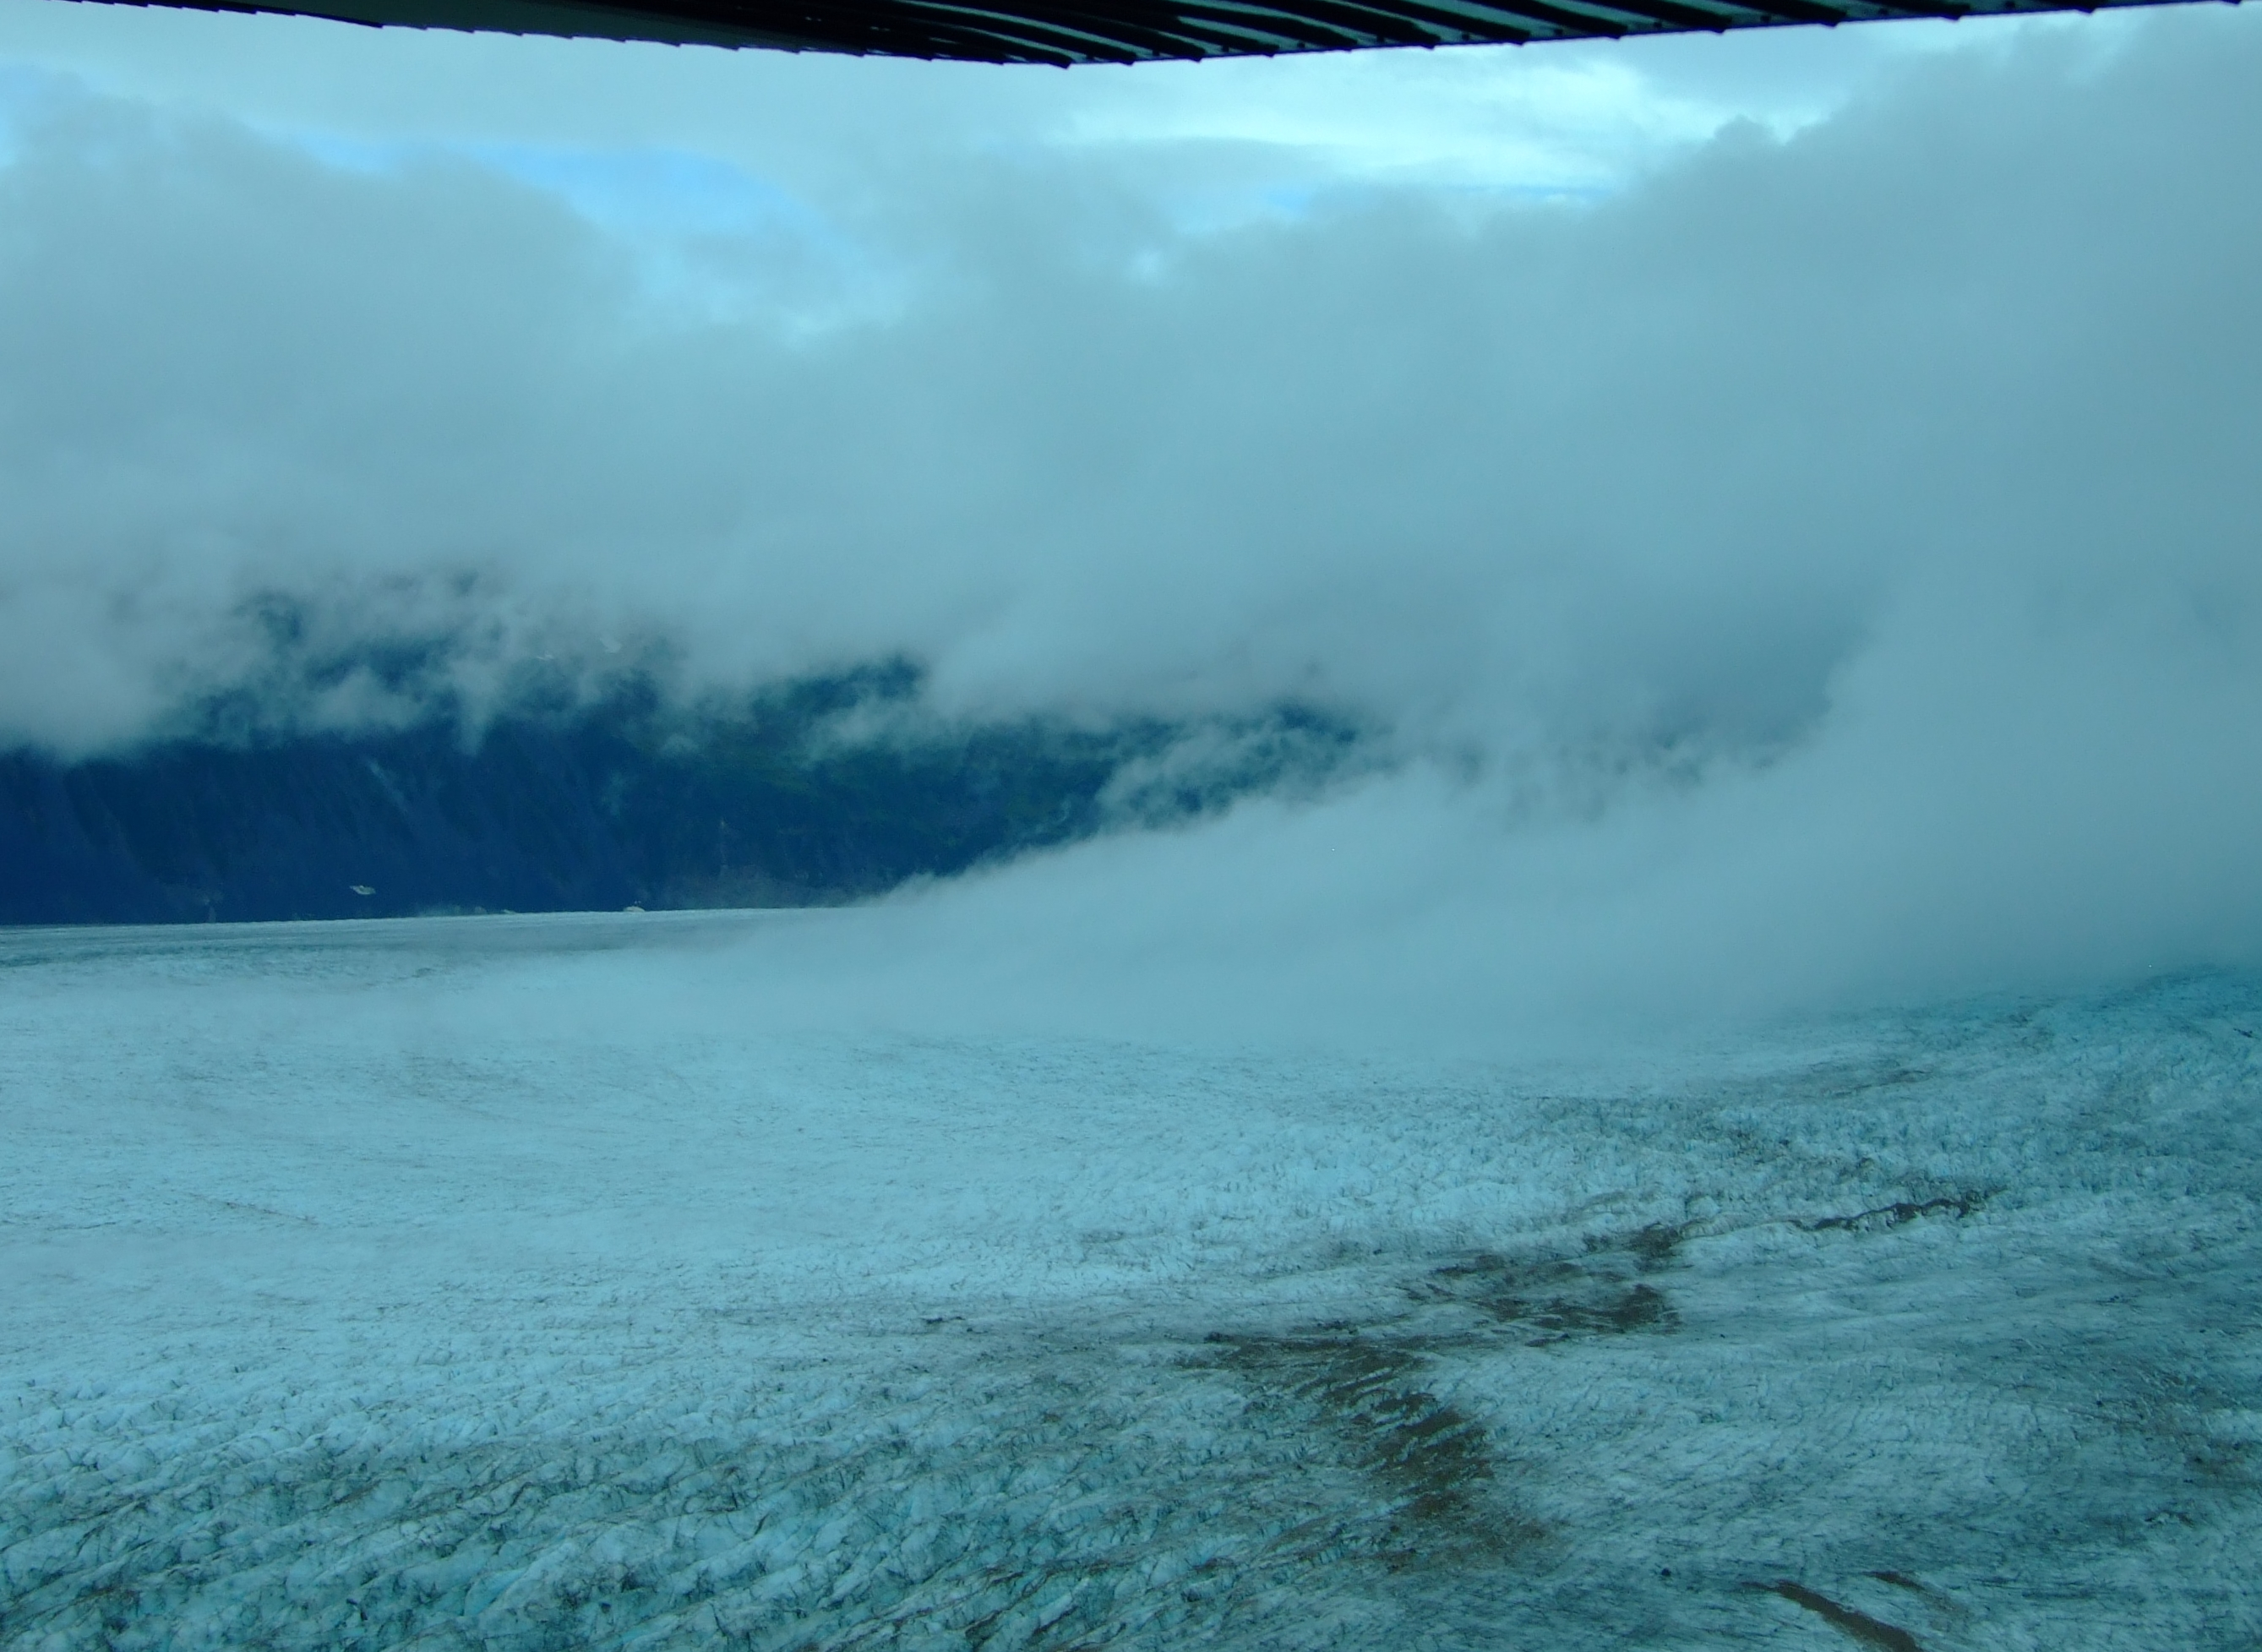 With buffeting winds propelling the cloud down the glacier it was time to get out.